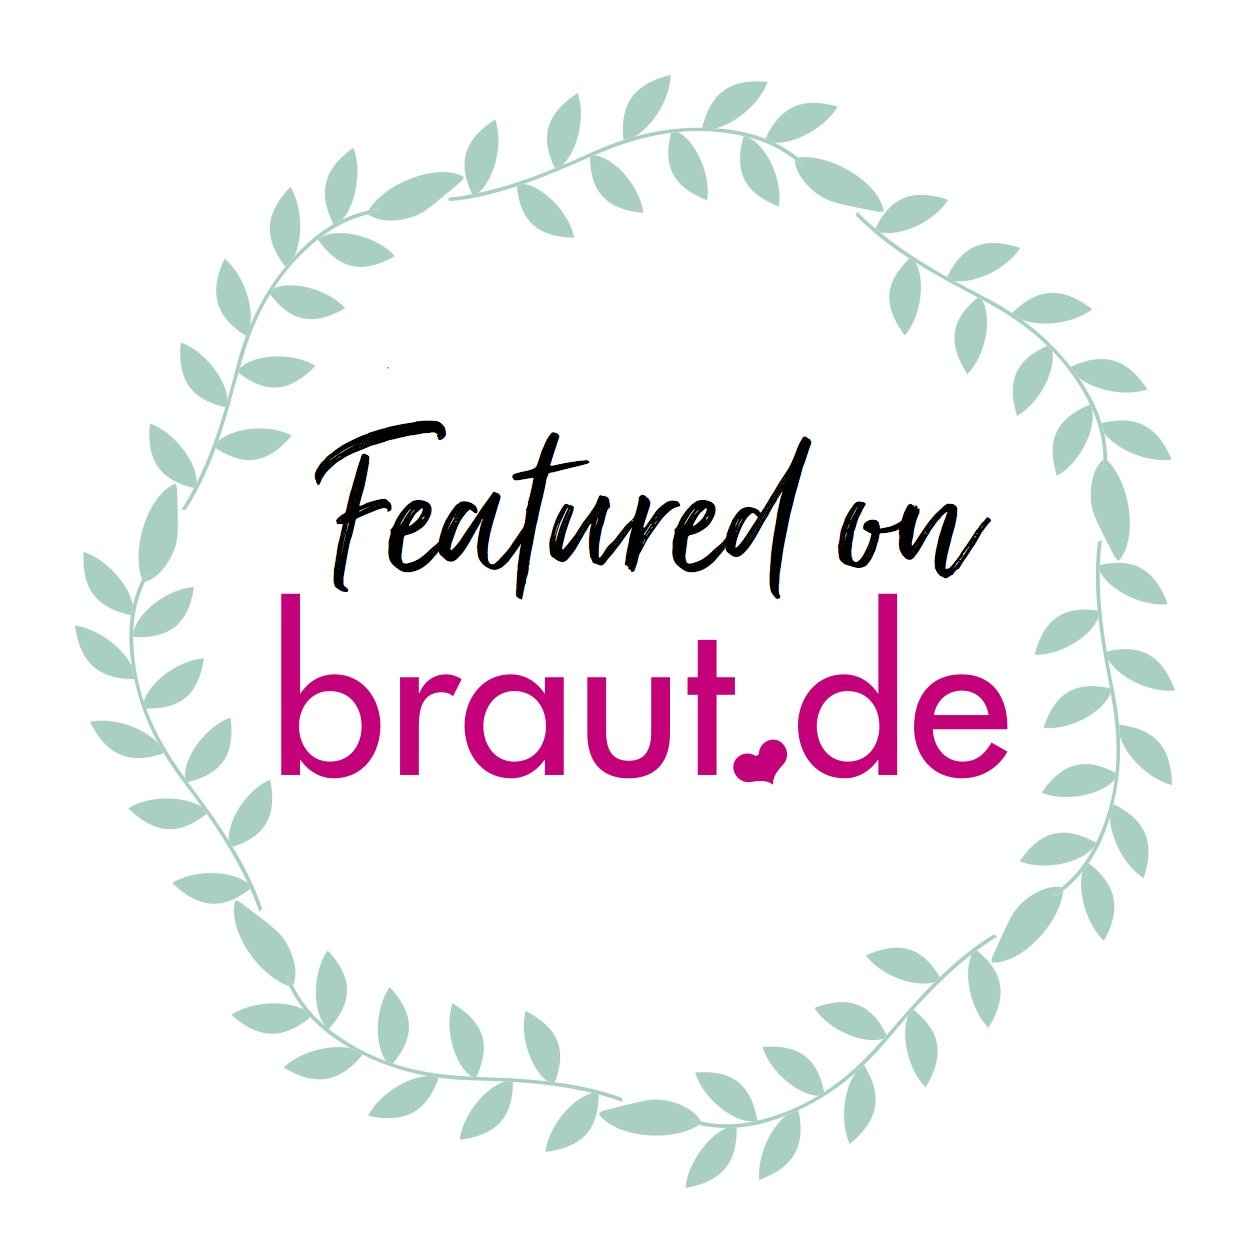 brautde_featured-on_1117_600x600_V1